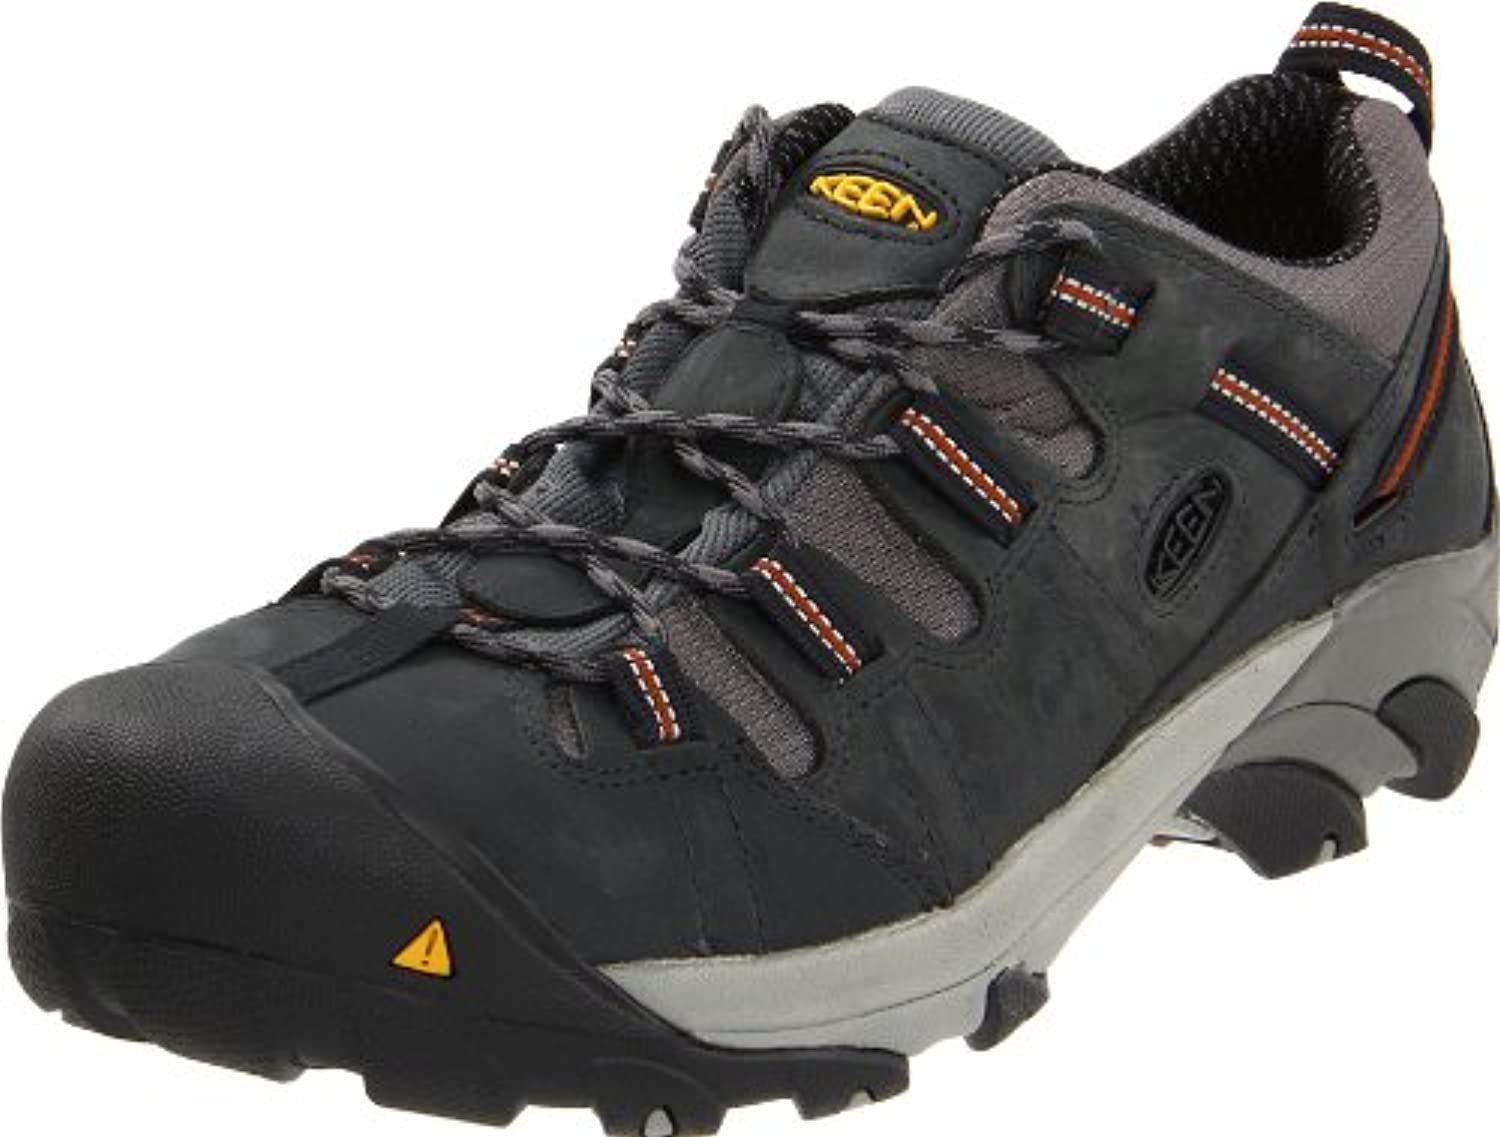 Keen Utility Men's Detroit Low Steel Toe Shoe Peacoat 15 D US